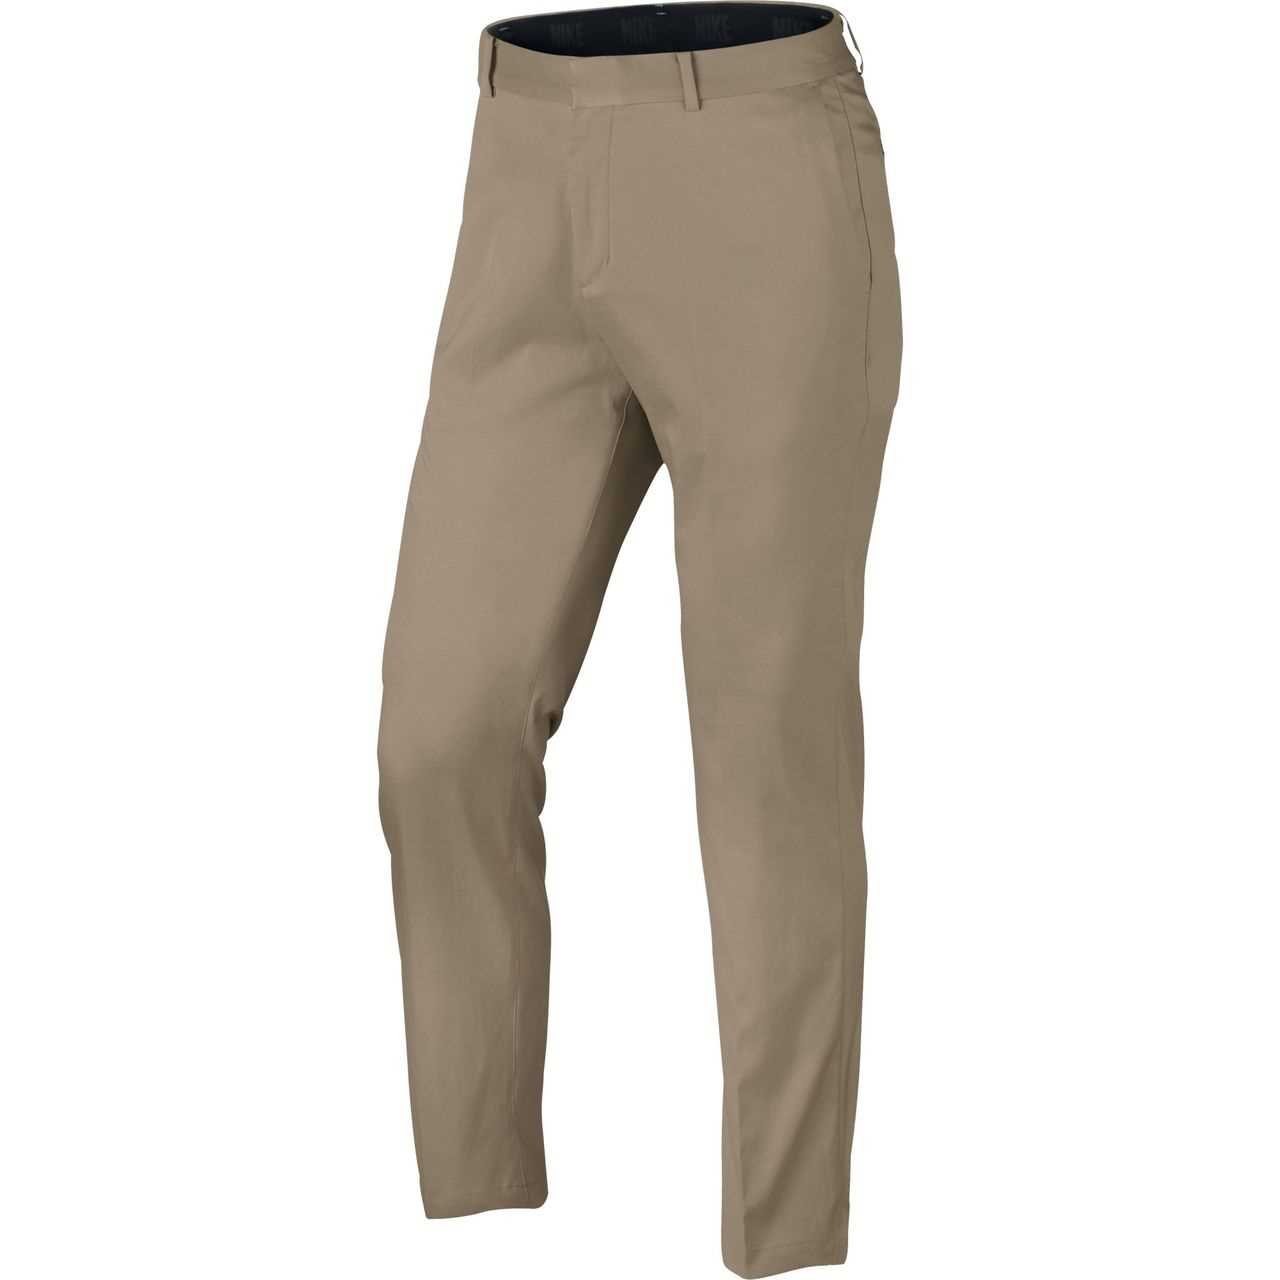 5a49147e56bd2f Nike New Flat Front Men s Golf Pants - Khaki